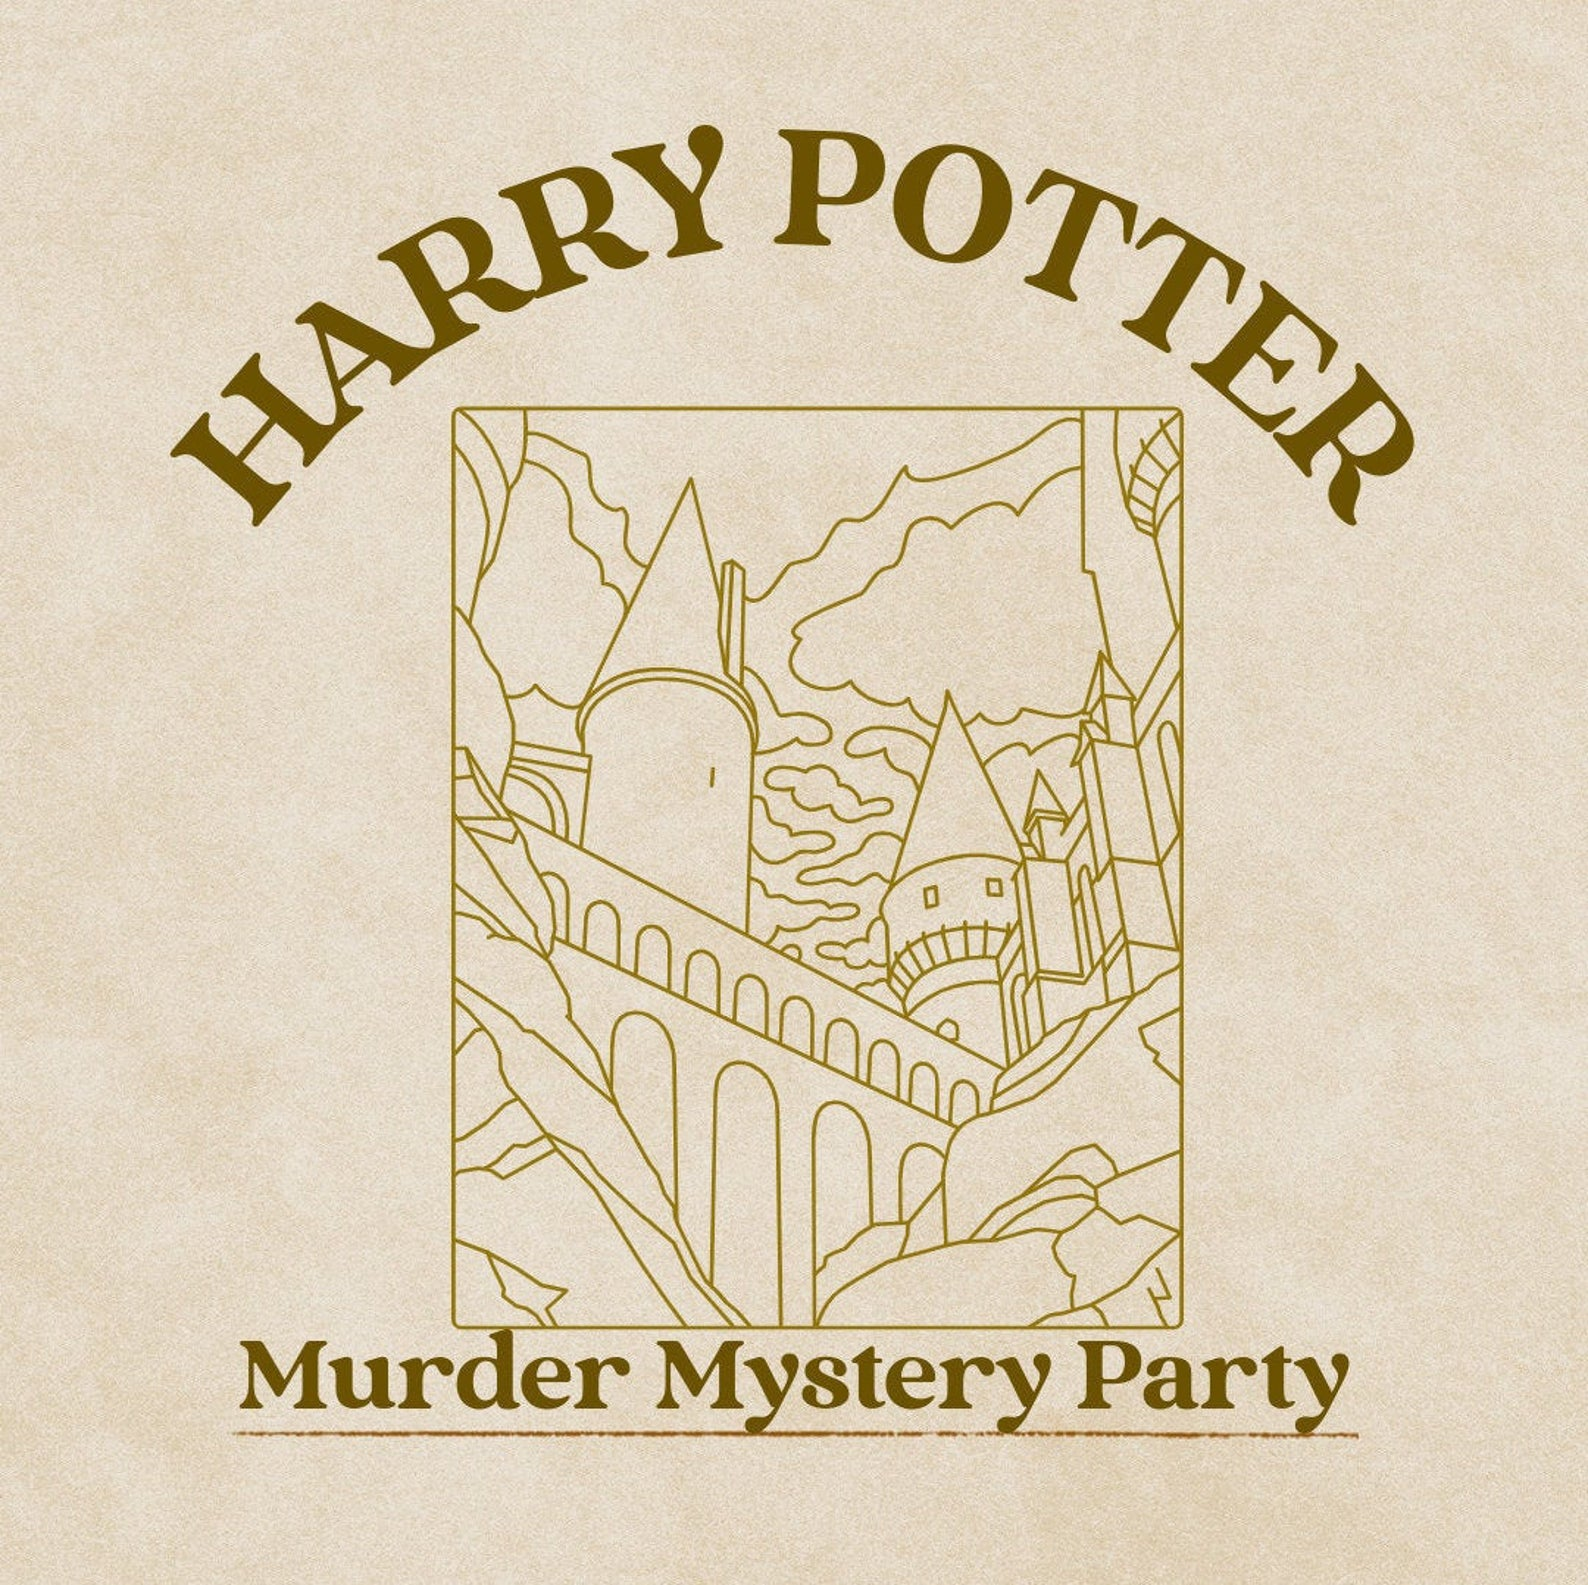 Wizard World Murder Mystery Party Game